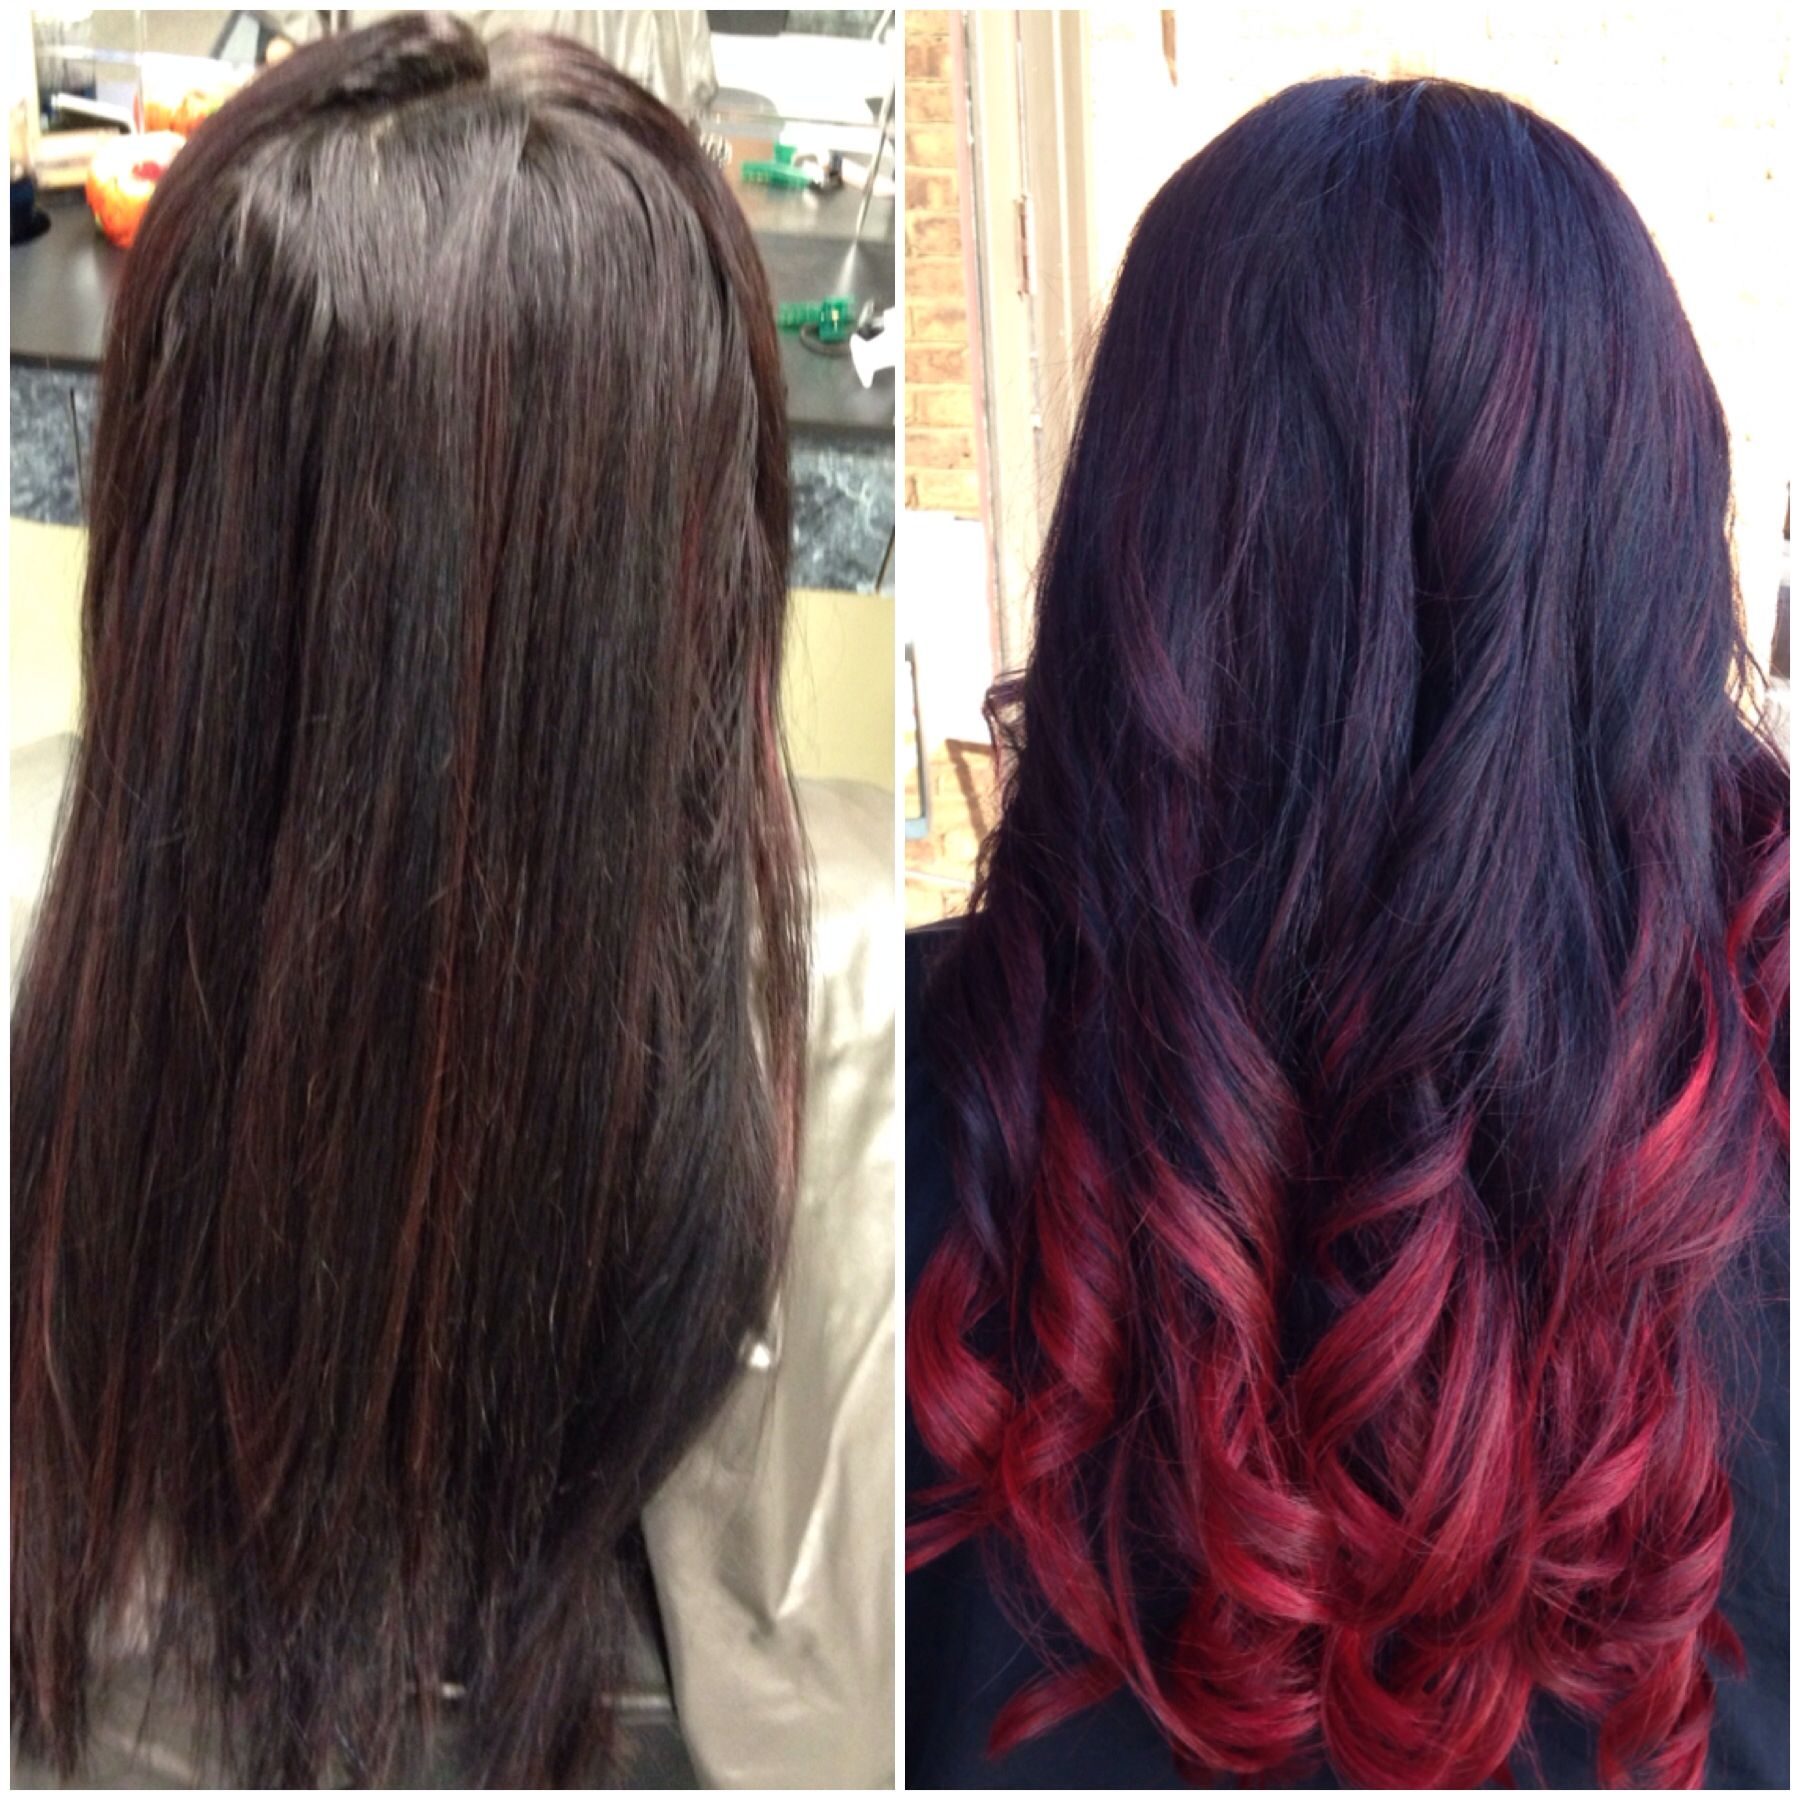 Before And After Ombre Pittsburgh Pa Stylist Kara Confetti S Hair And Body Studio Hair Hair Styles Long Hair Styles